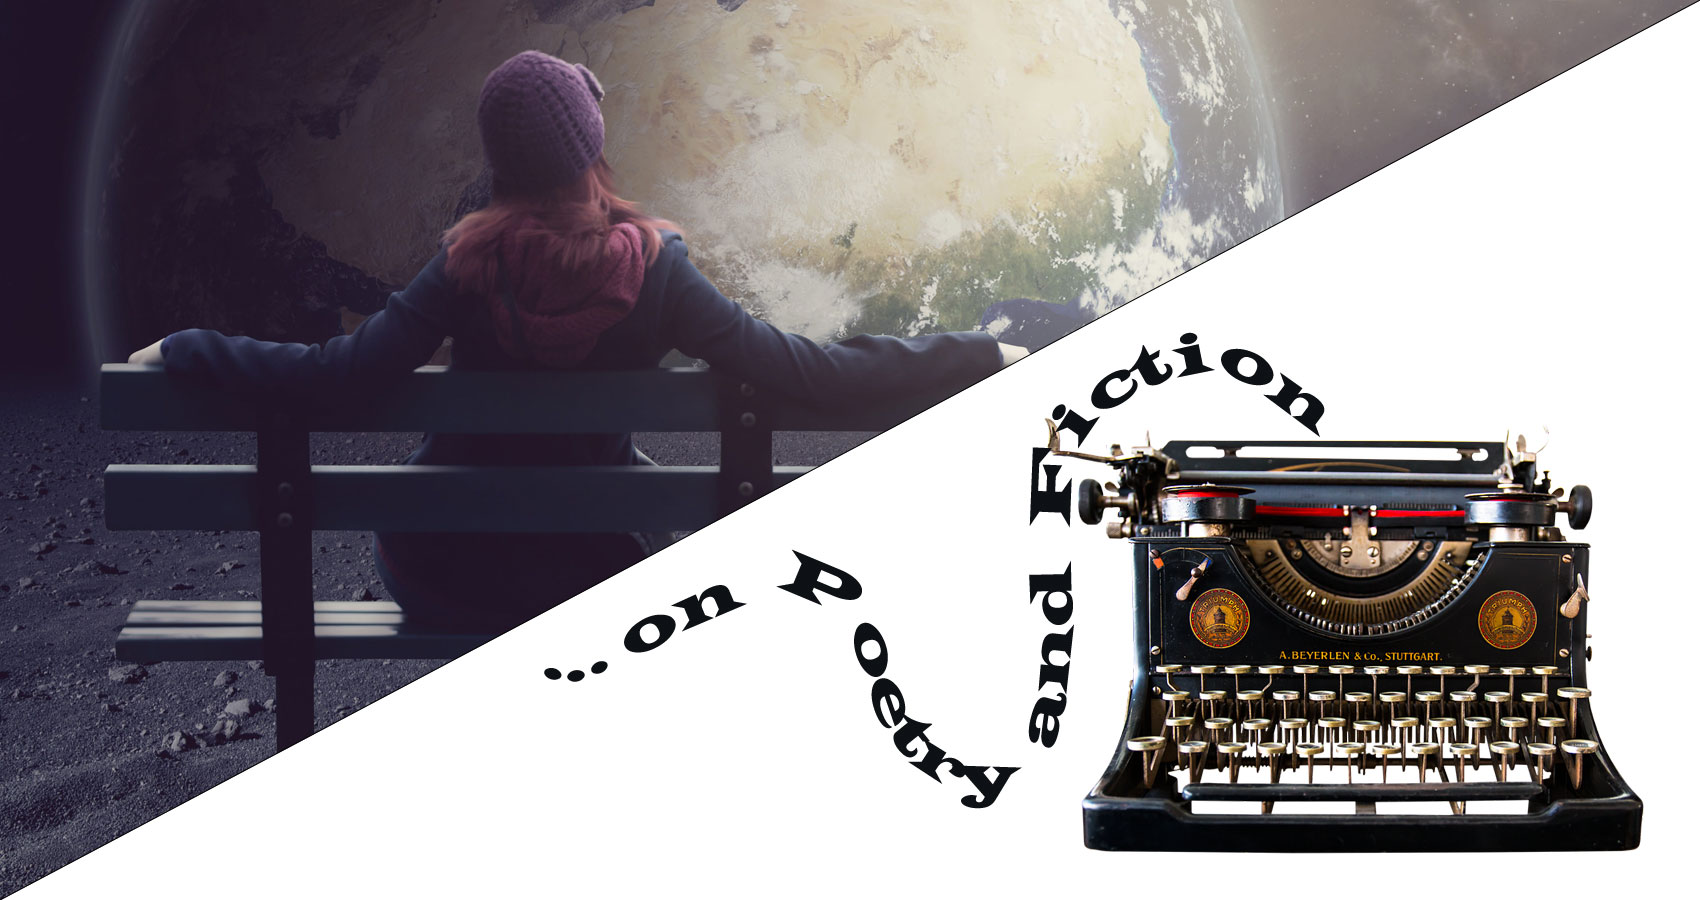 """..on Poetry and Fiction - Just """"One Word"""" Away (""""Fantasy""""), editorial by Phyllis P. Colucci at Spillwords.com"""